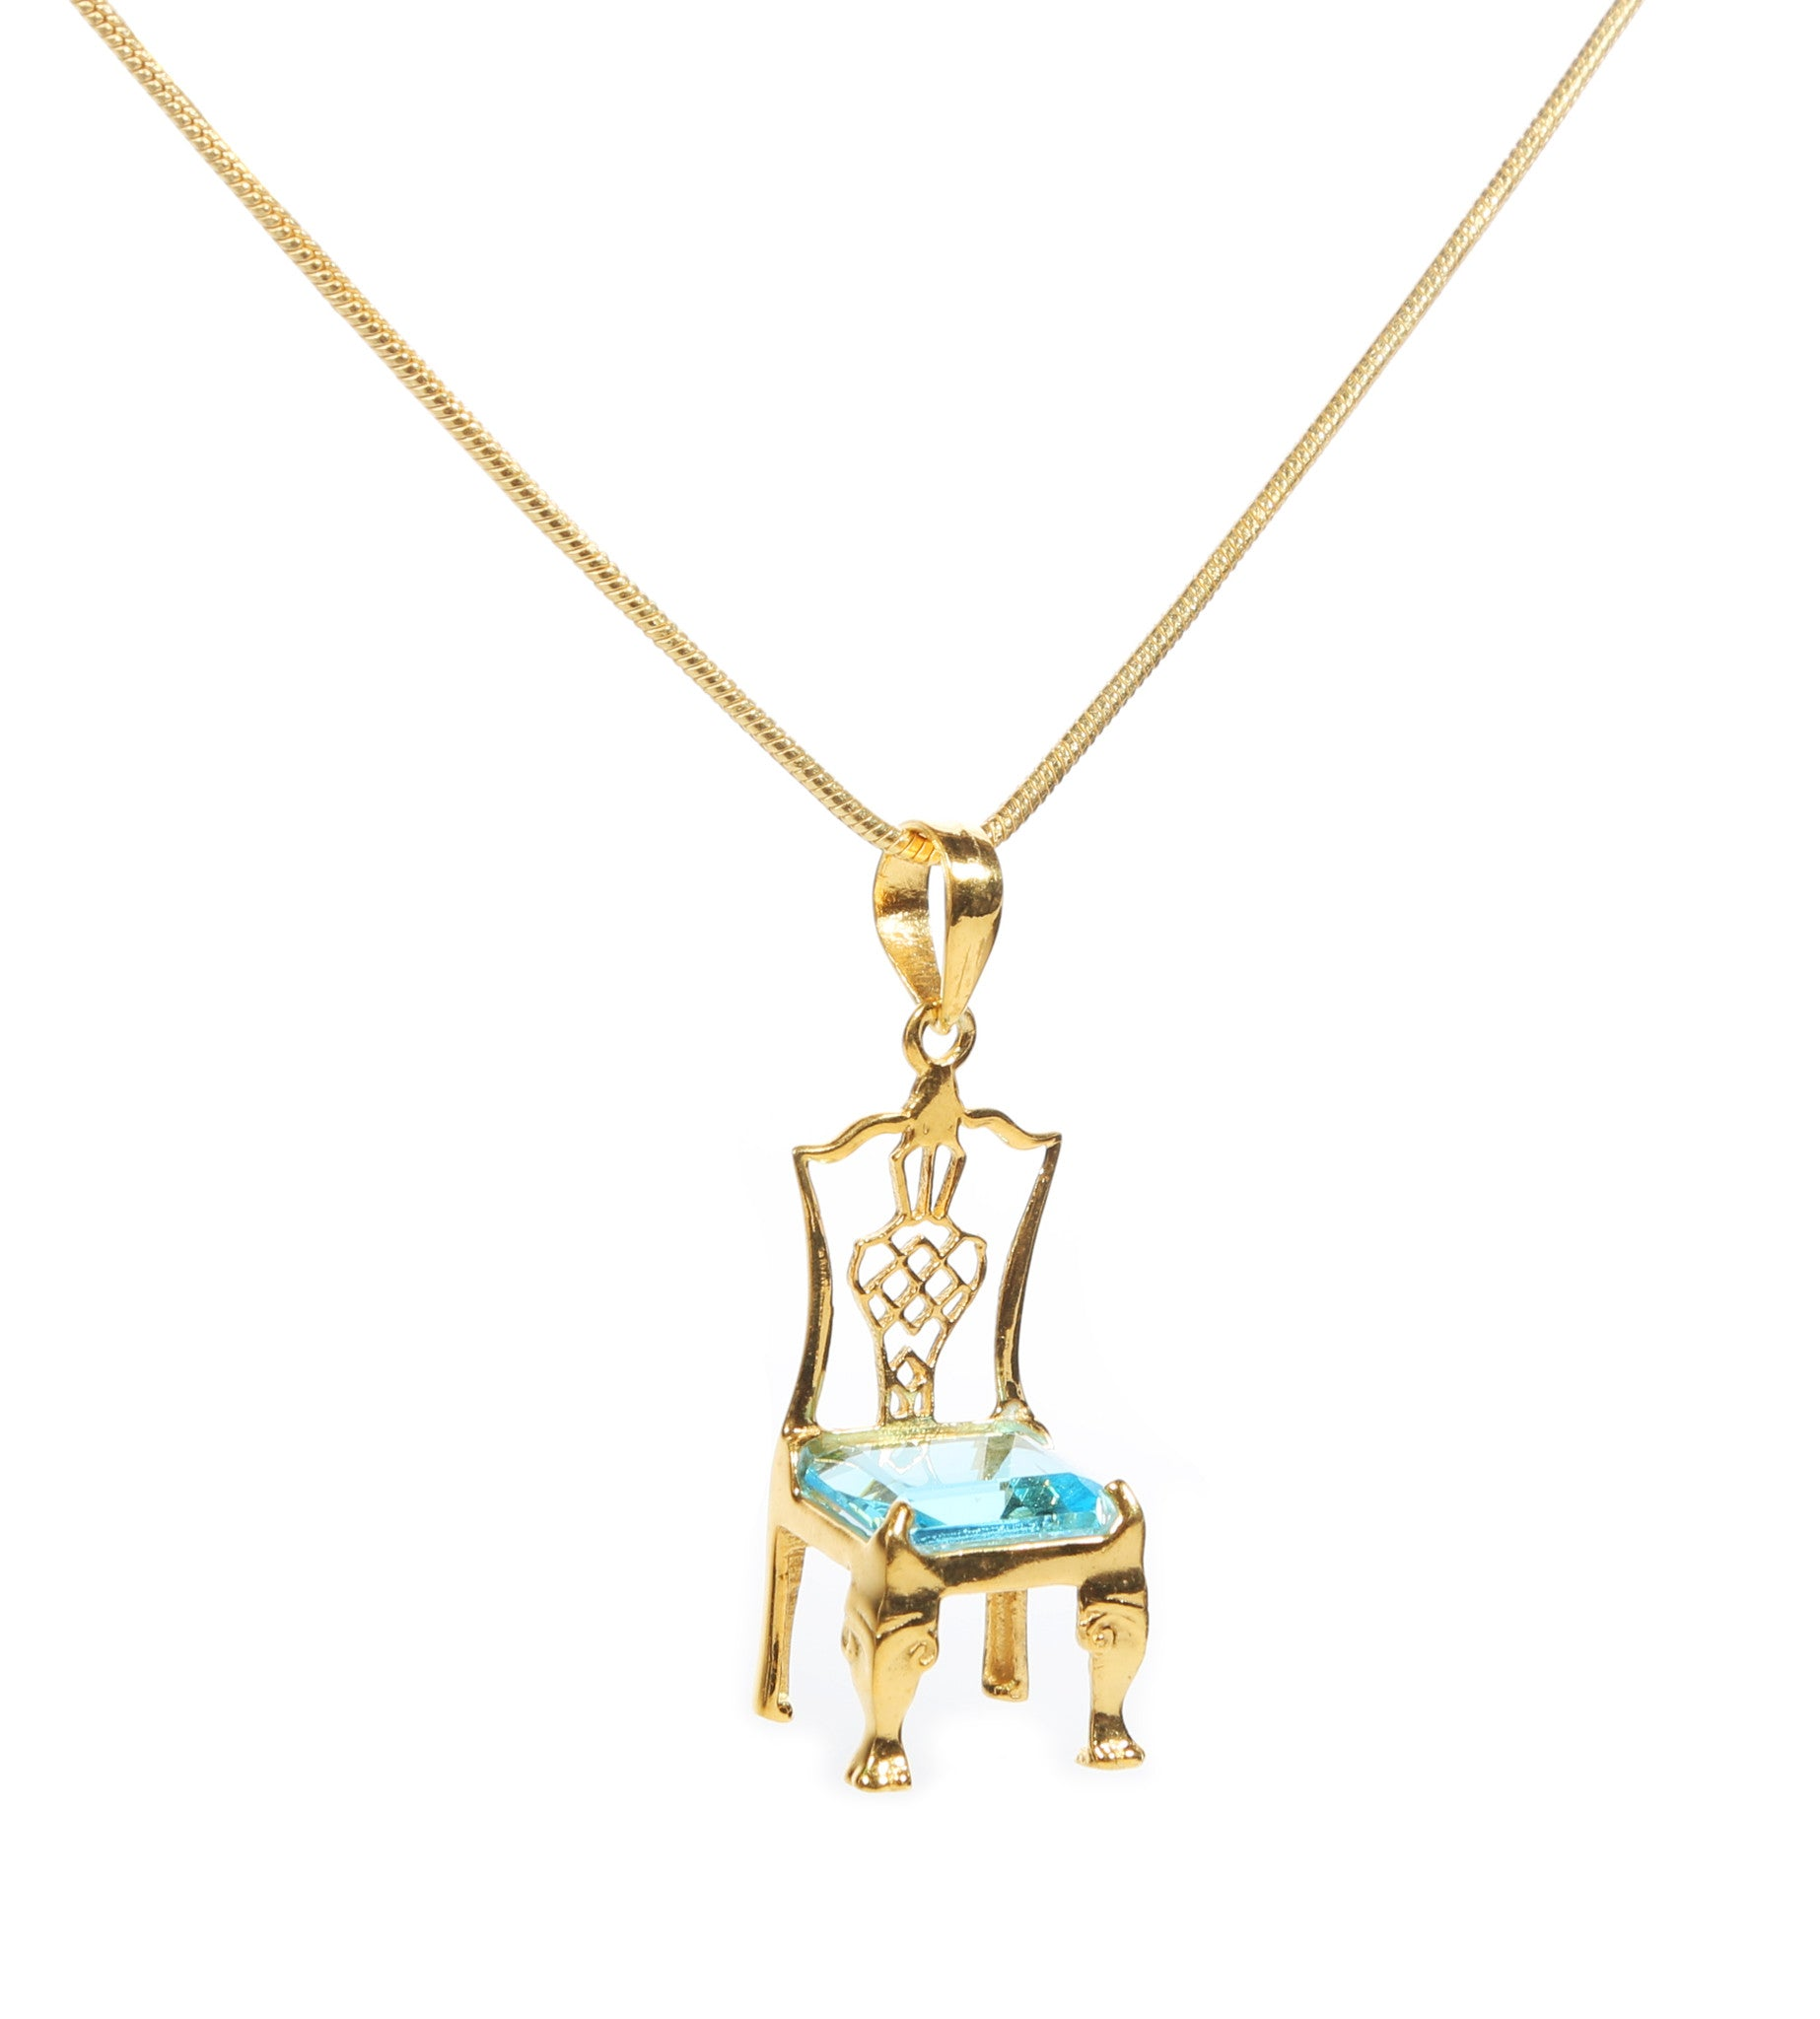 Carleton Varney Birthstone Chair Necklace - Carleton Varney